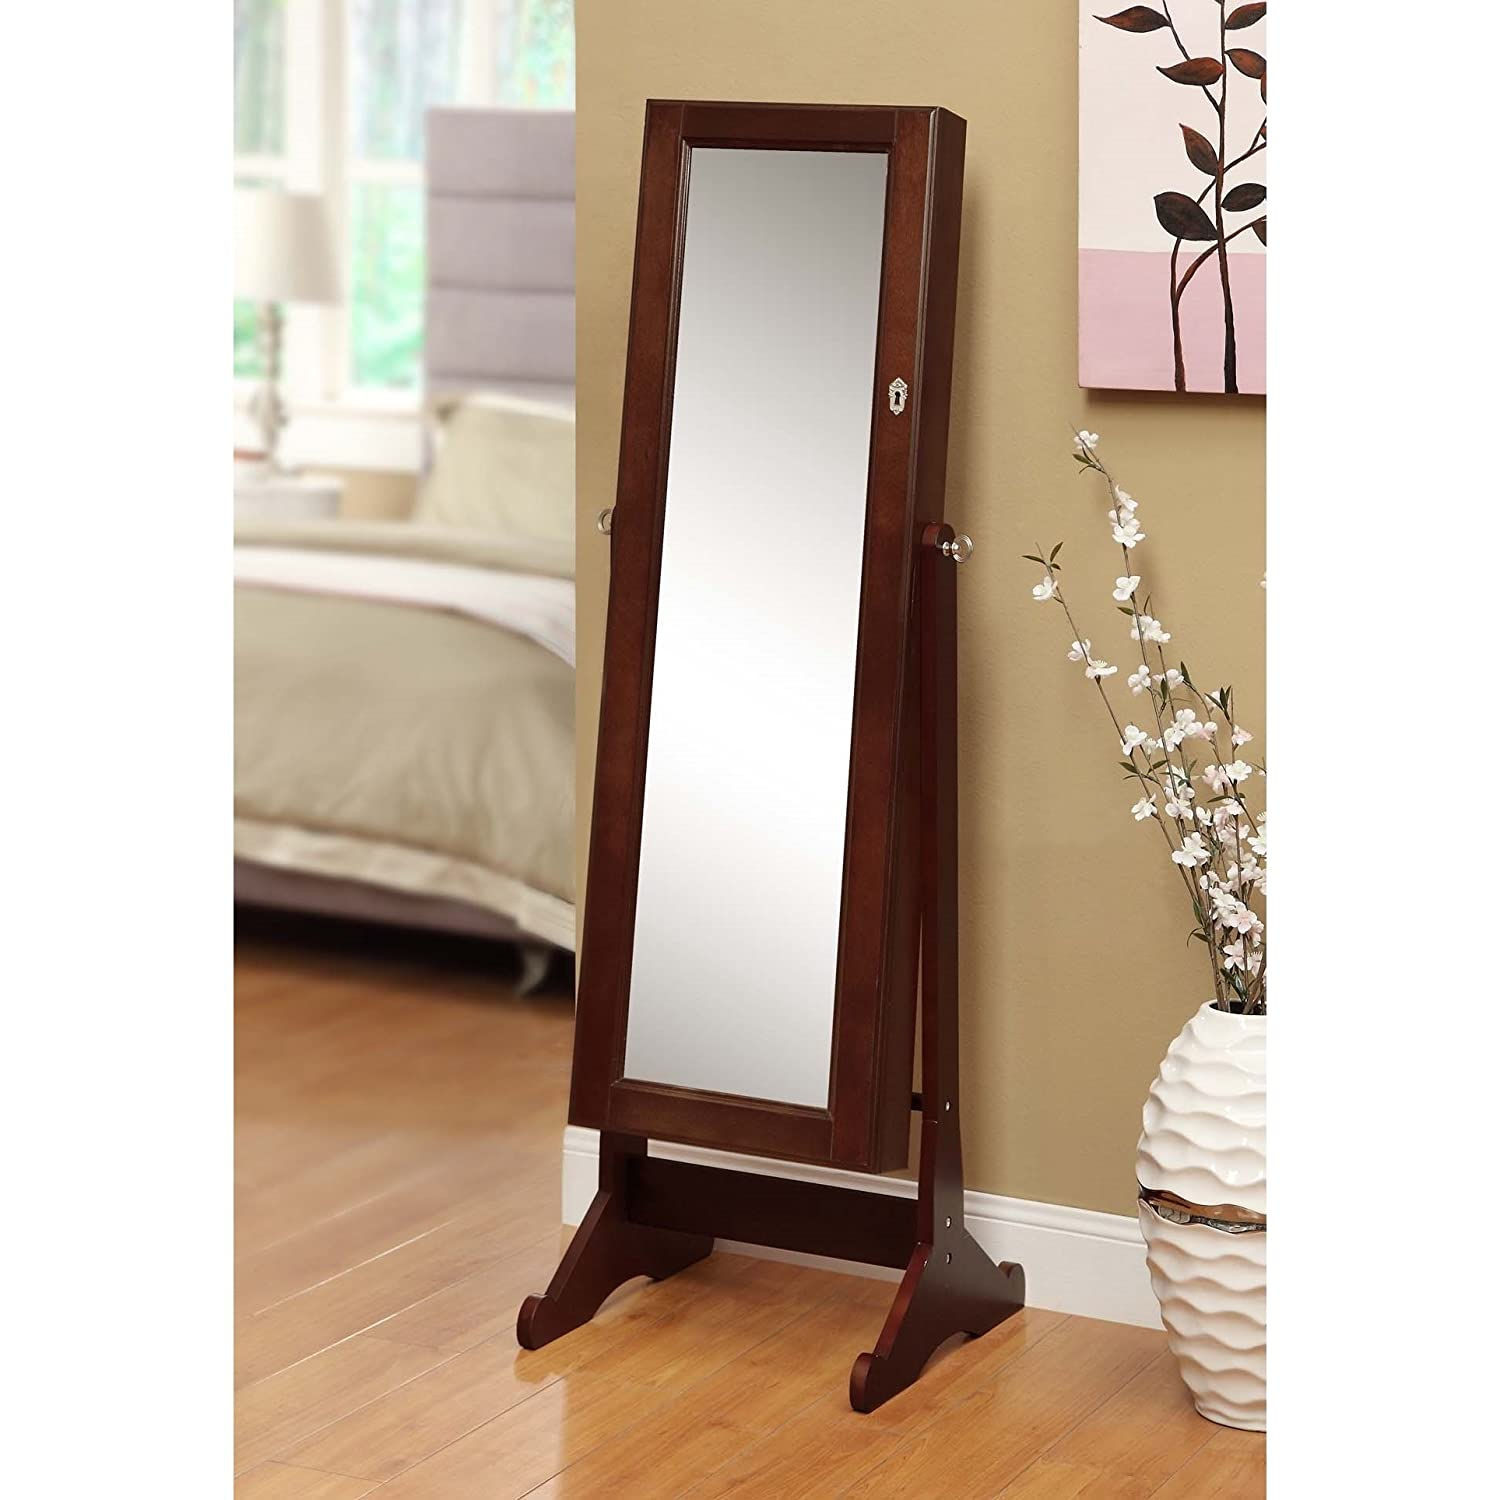 standing for jewelry gallery mirror decorating also cabinet stylish in ideas bedroom with armoire interesting modern thrilling